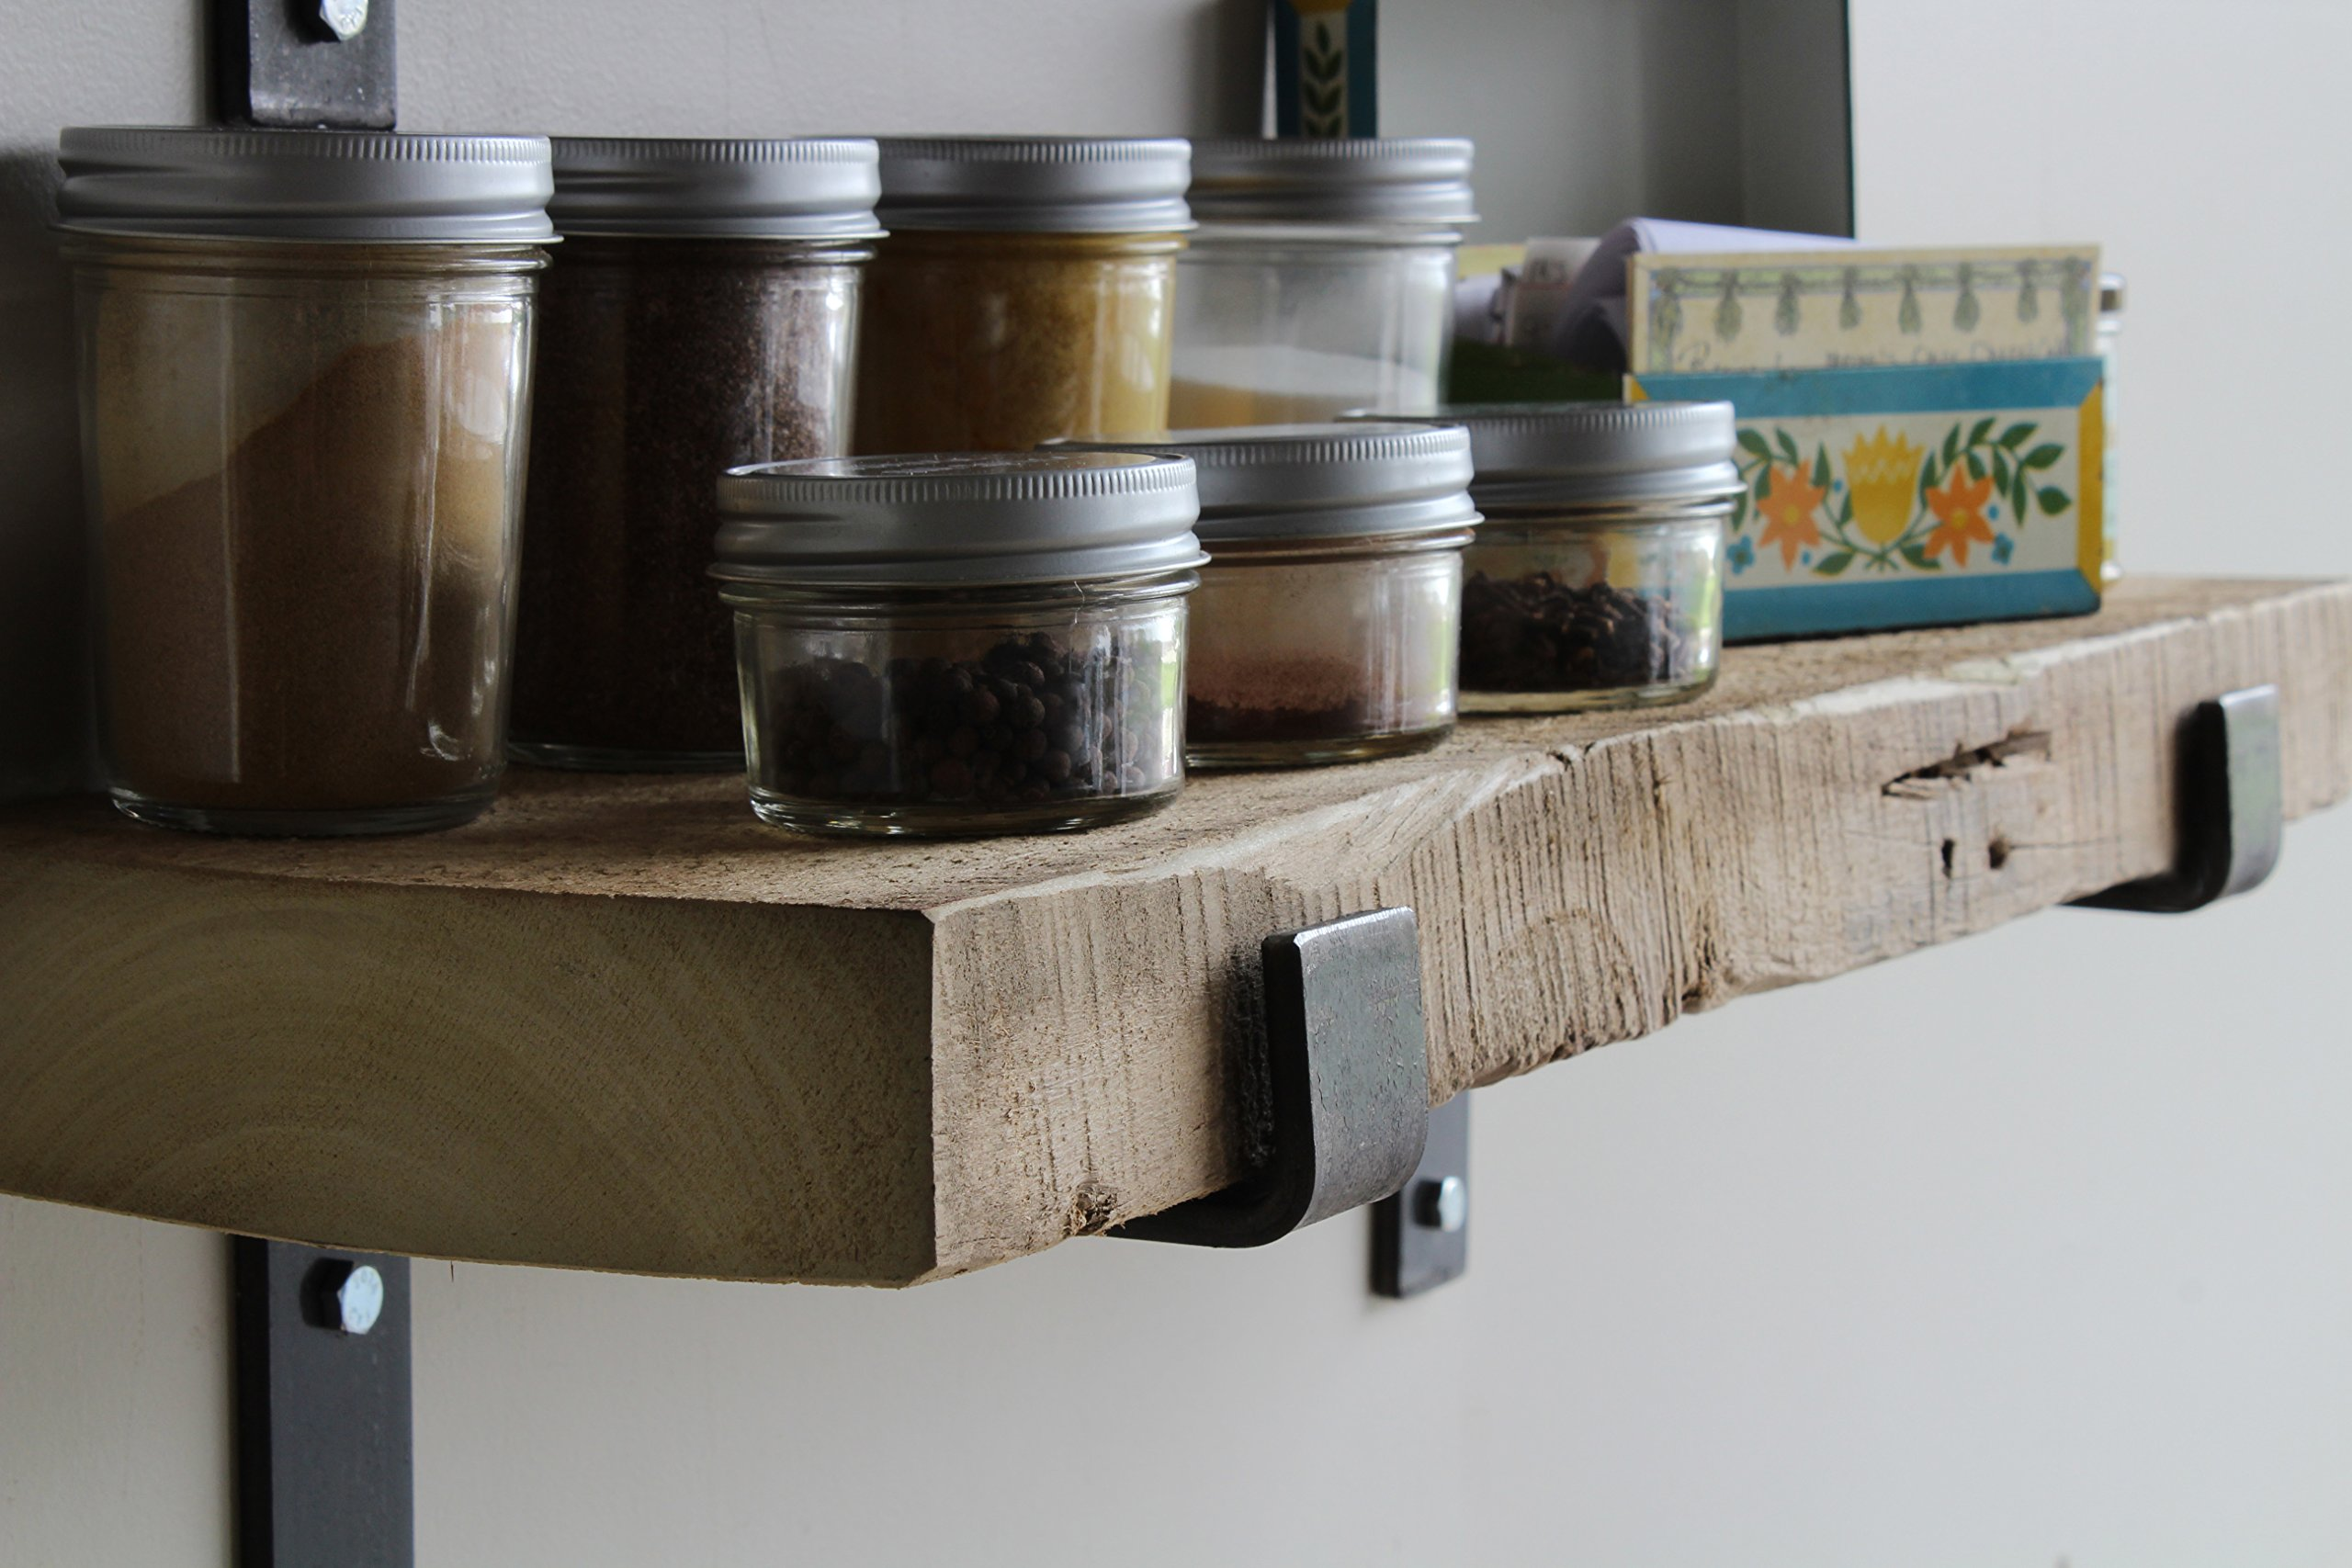 Reclaimed Wood Accent Shelves Rustic Industrial - Amish Handcrafted in Lancaster County, PA - Set of Two | 24 Inches, (Genuine Salvaged/Reclaimed with Raw Metal Brackets) (Natural 24''x 7''x 2'') by Urban Legacy (Image #4)